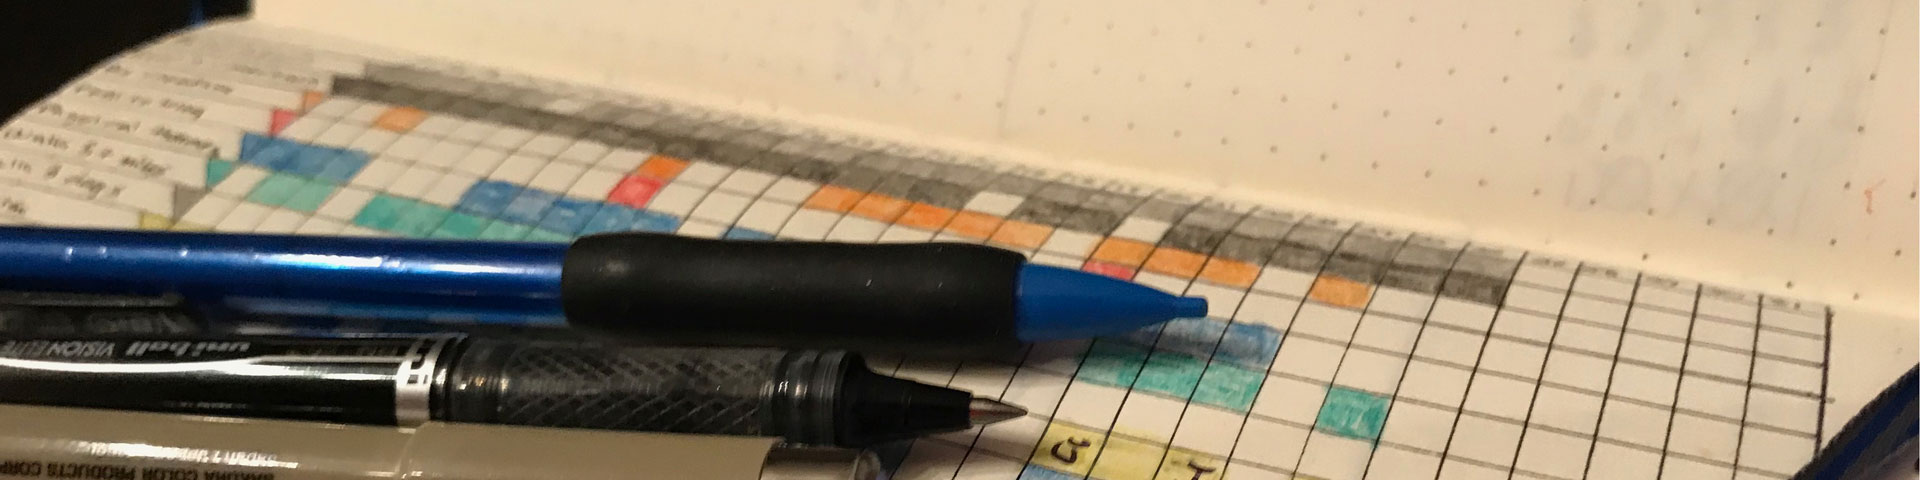 Three pens sitting on a grid-style bullet journal notebook. The colored squares of a habit tracker appear in the background.